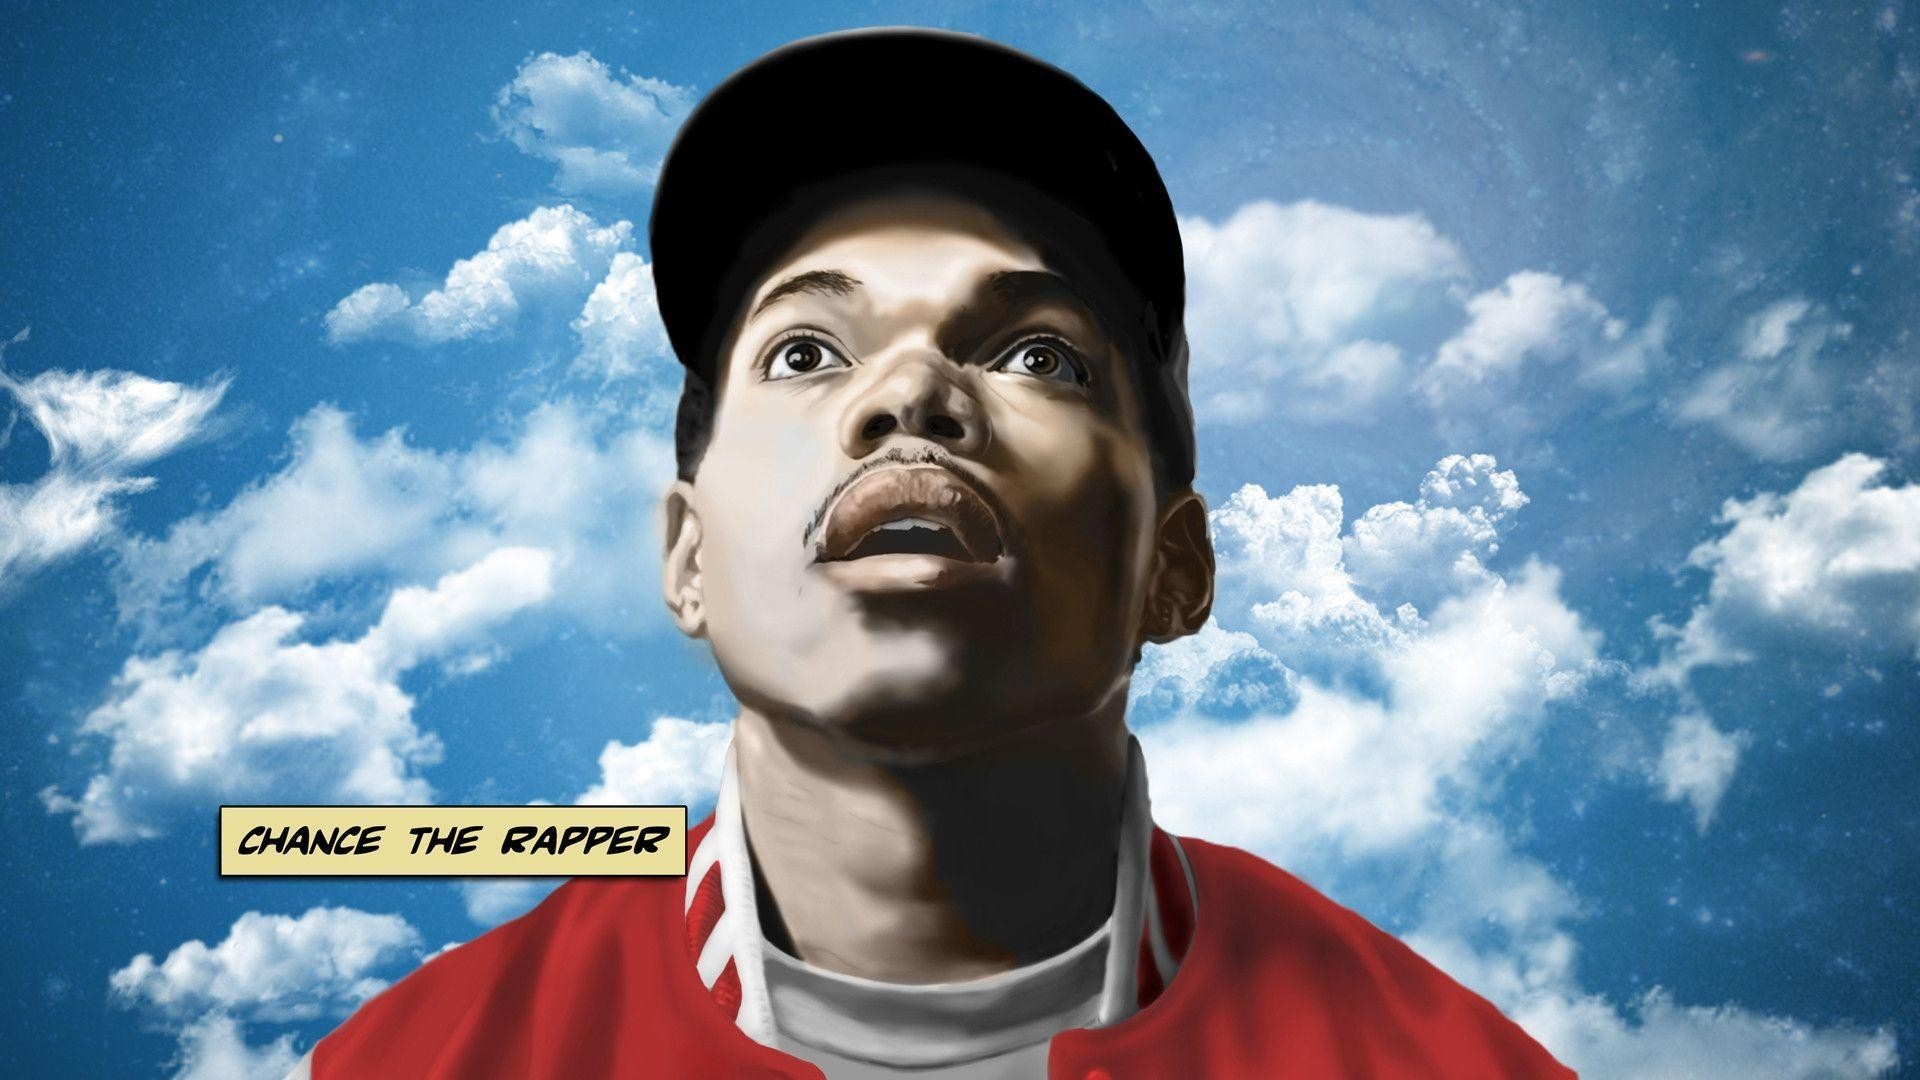 Chance The Rapper Free Wallpaper and Background